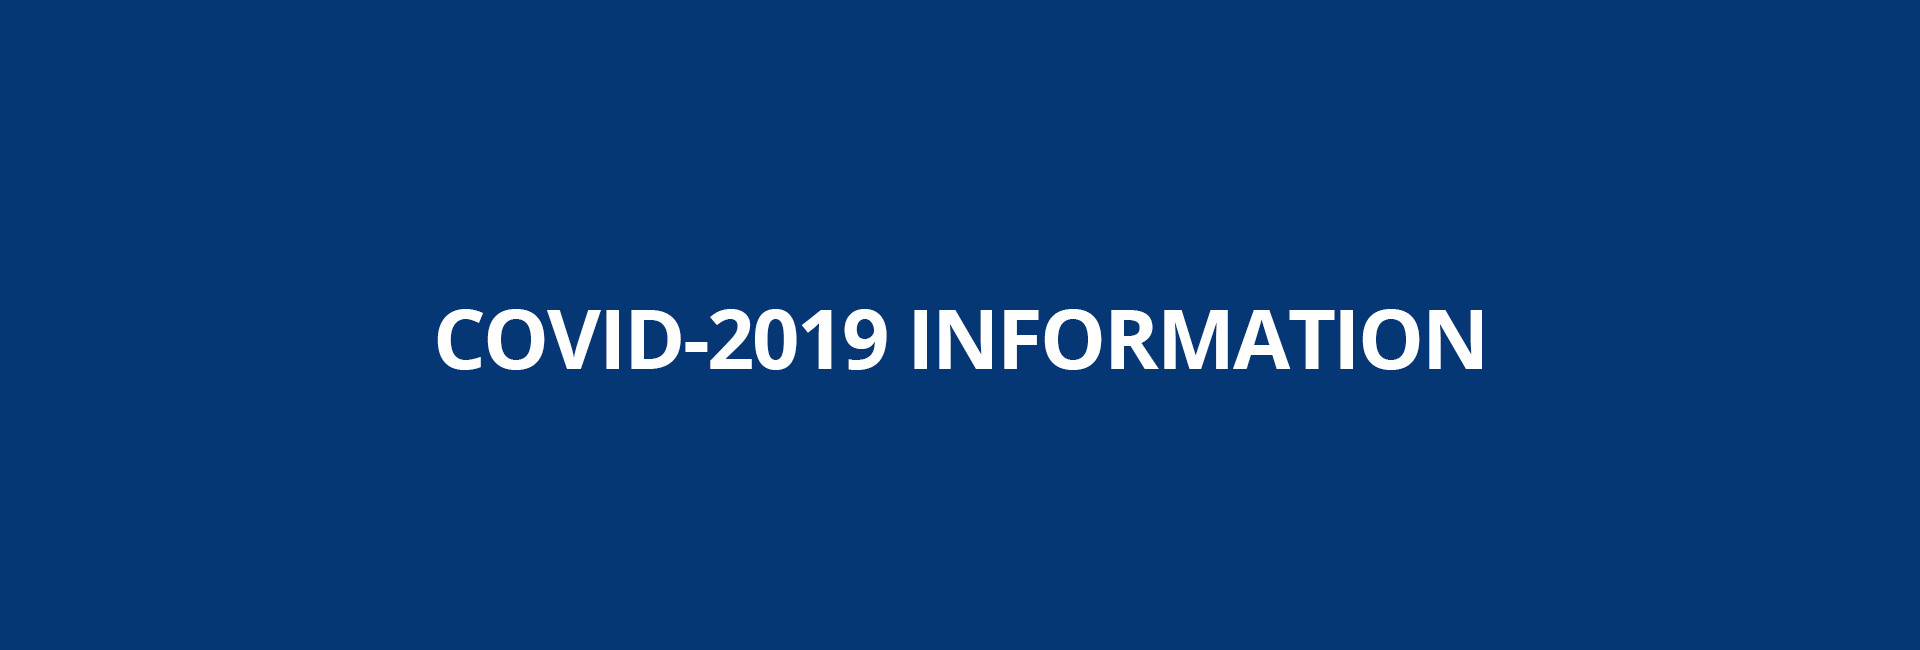 COVID-2019 INFORMATION